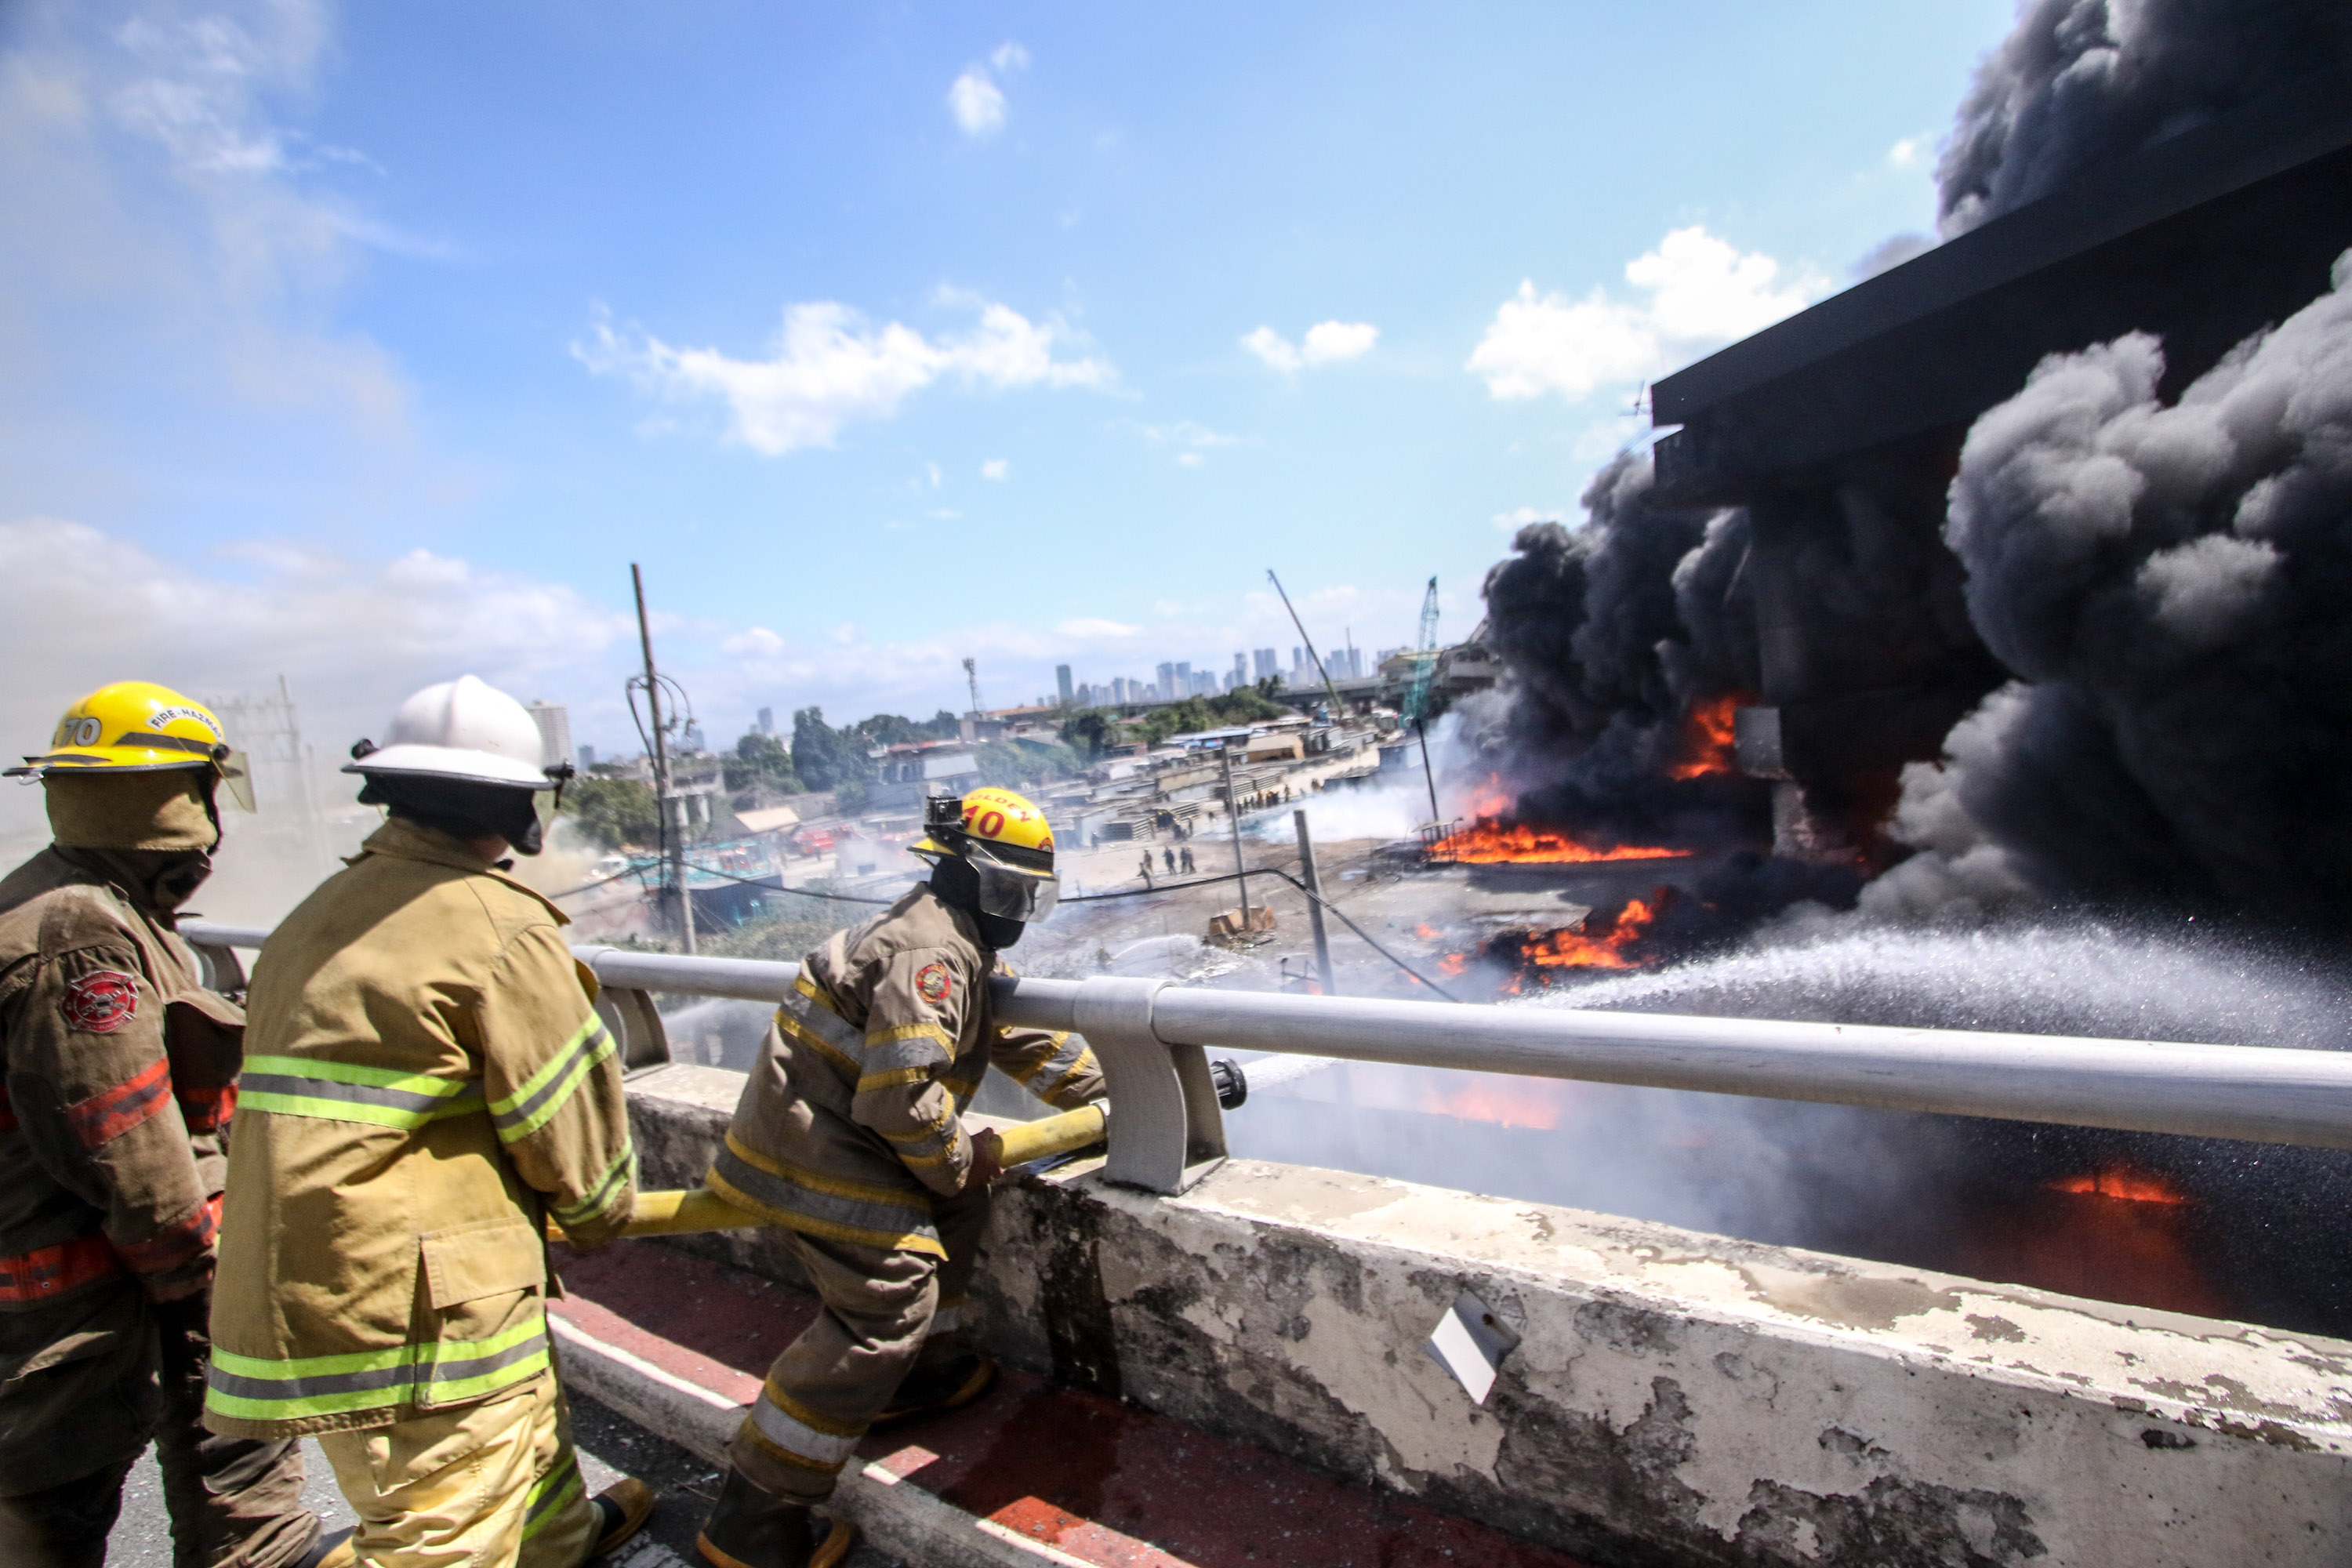 FIREFIGHTERS. Firemen try to put out the fire that extended to a portion of the Metro Skyway Stage 3 in Pandacan, Manila, on February 1, 2020. Photo by KD Madrilejos/Rappker